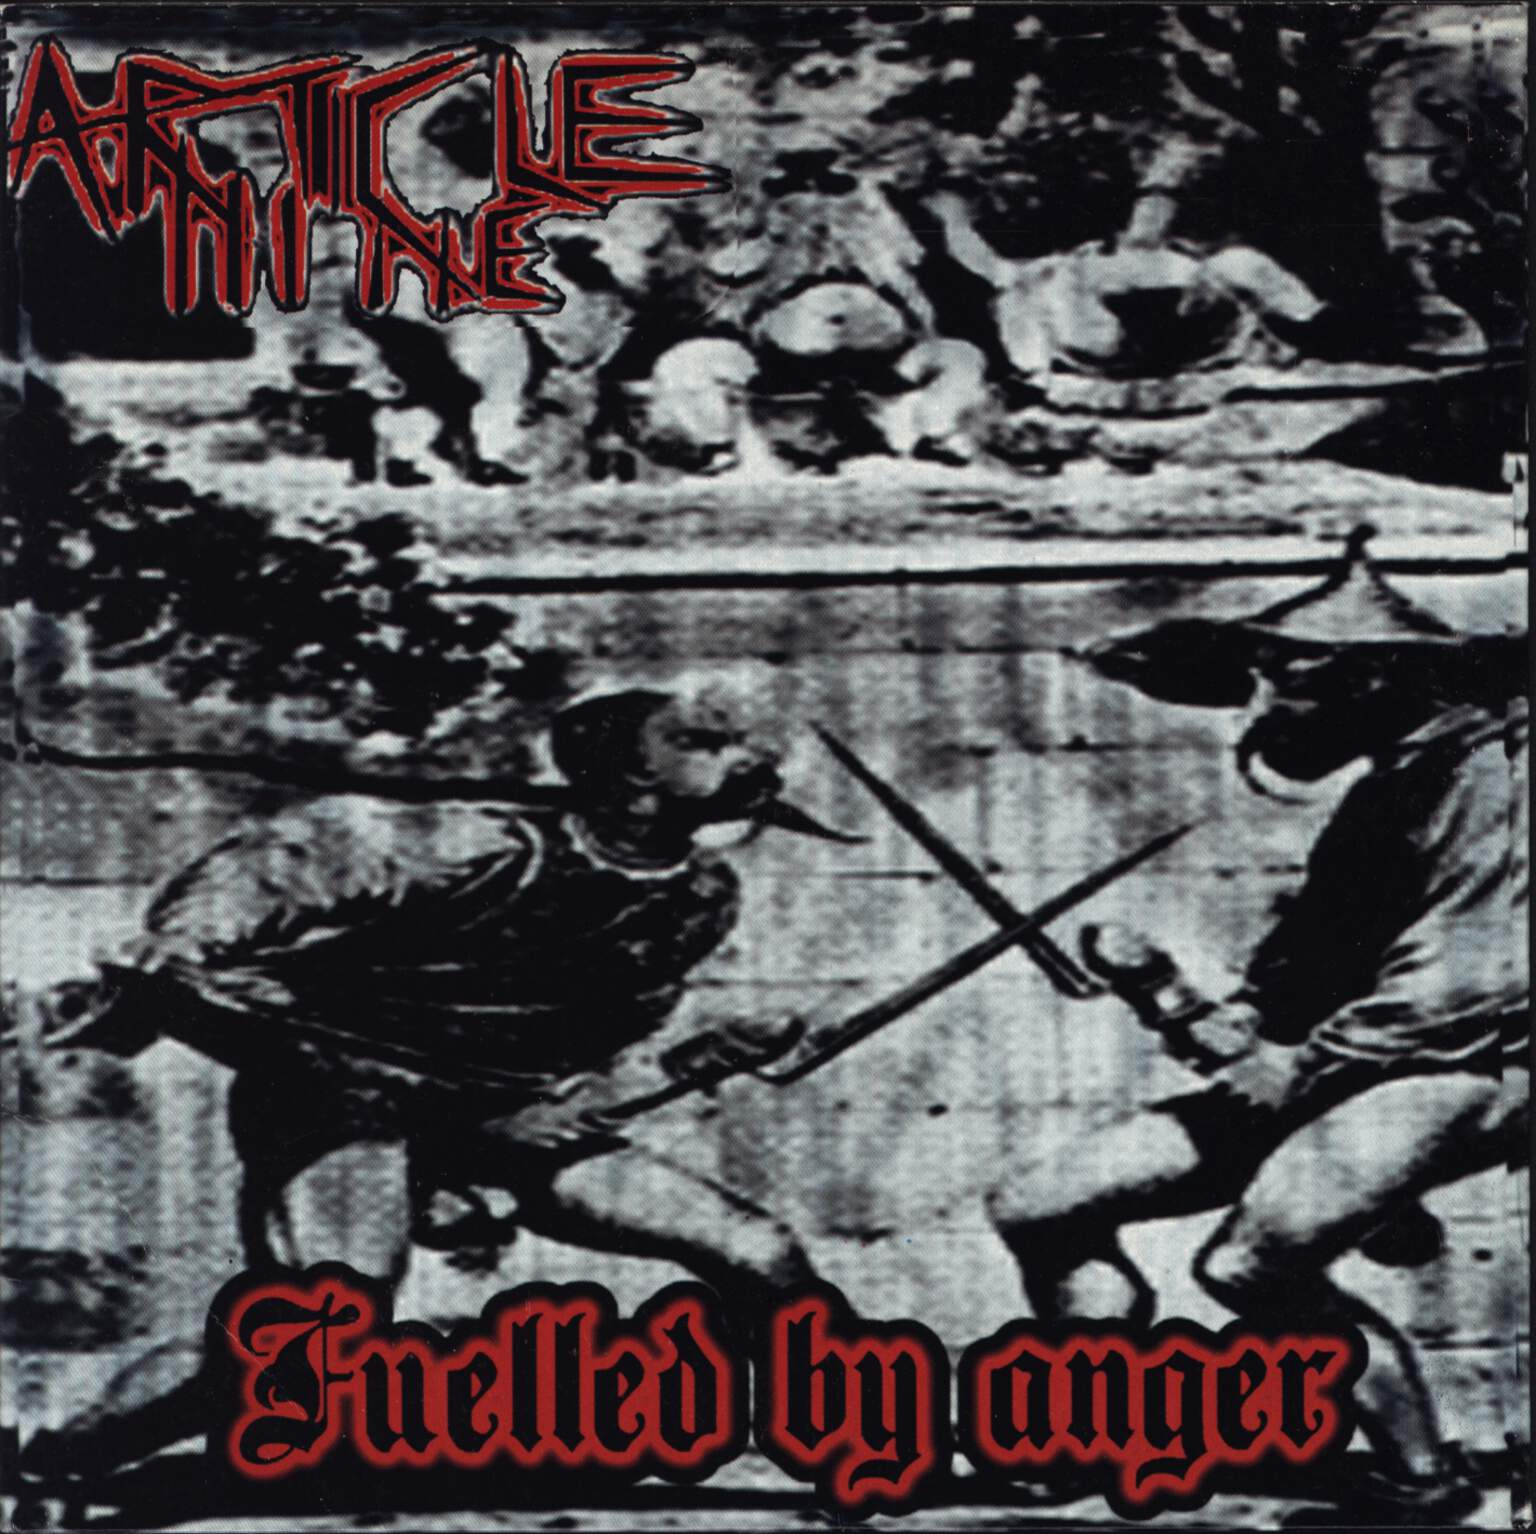 "Article Nine: Fuelled By Anger, 7"" Single (Vinyl)"